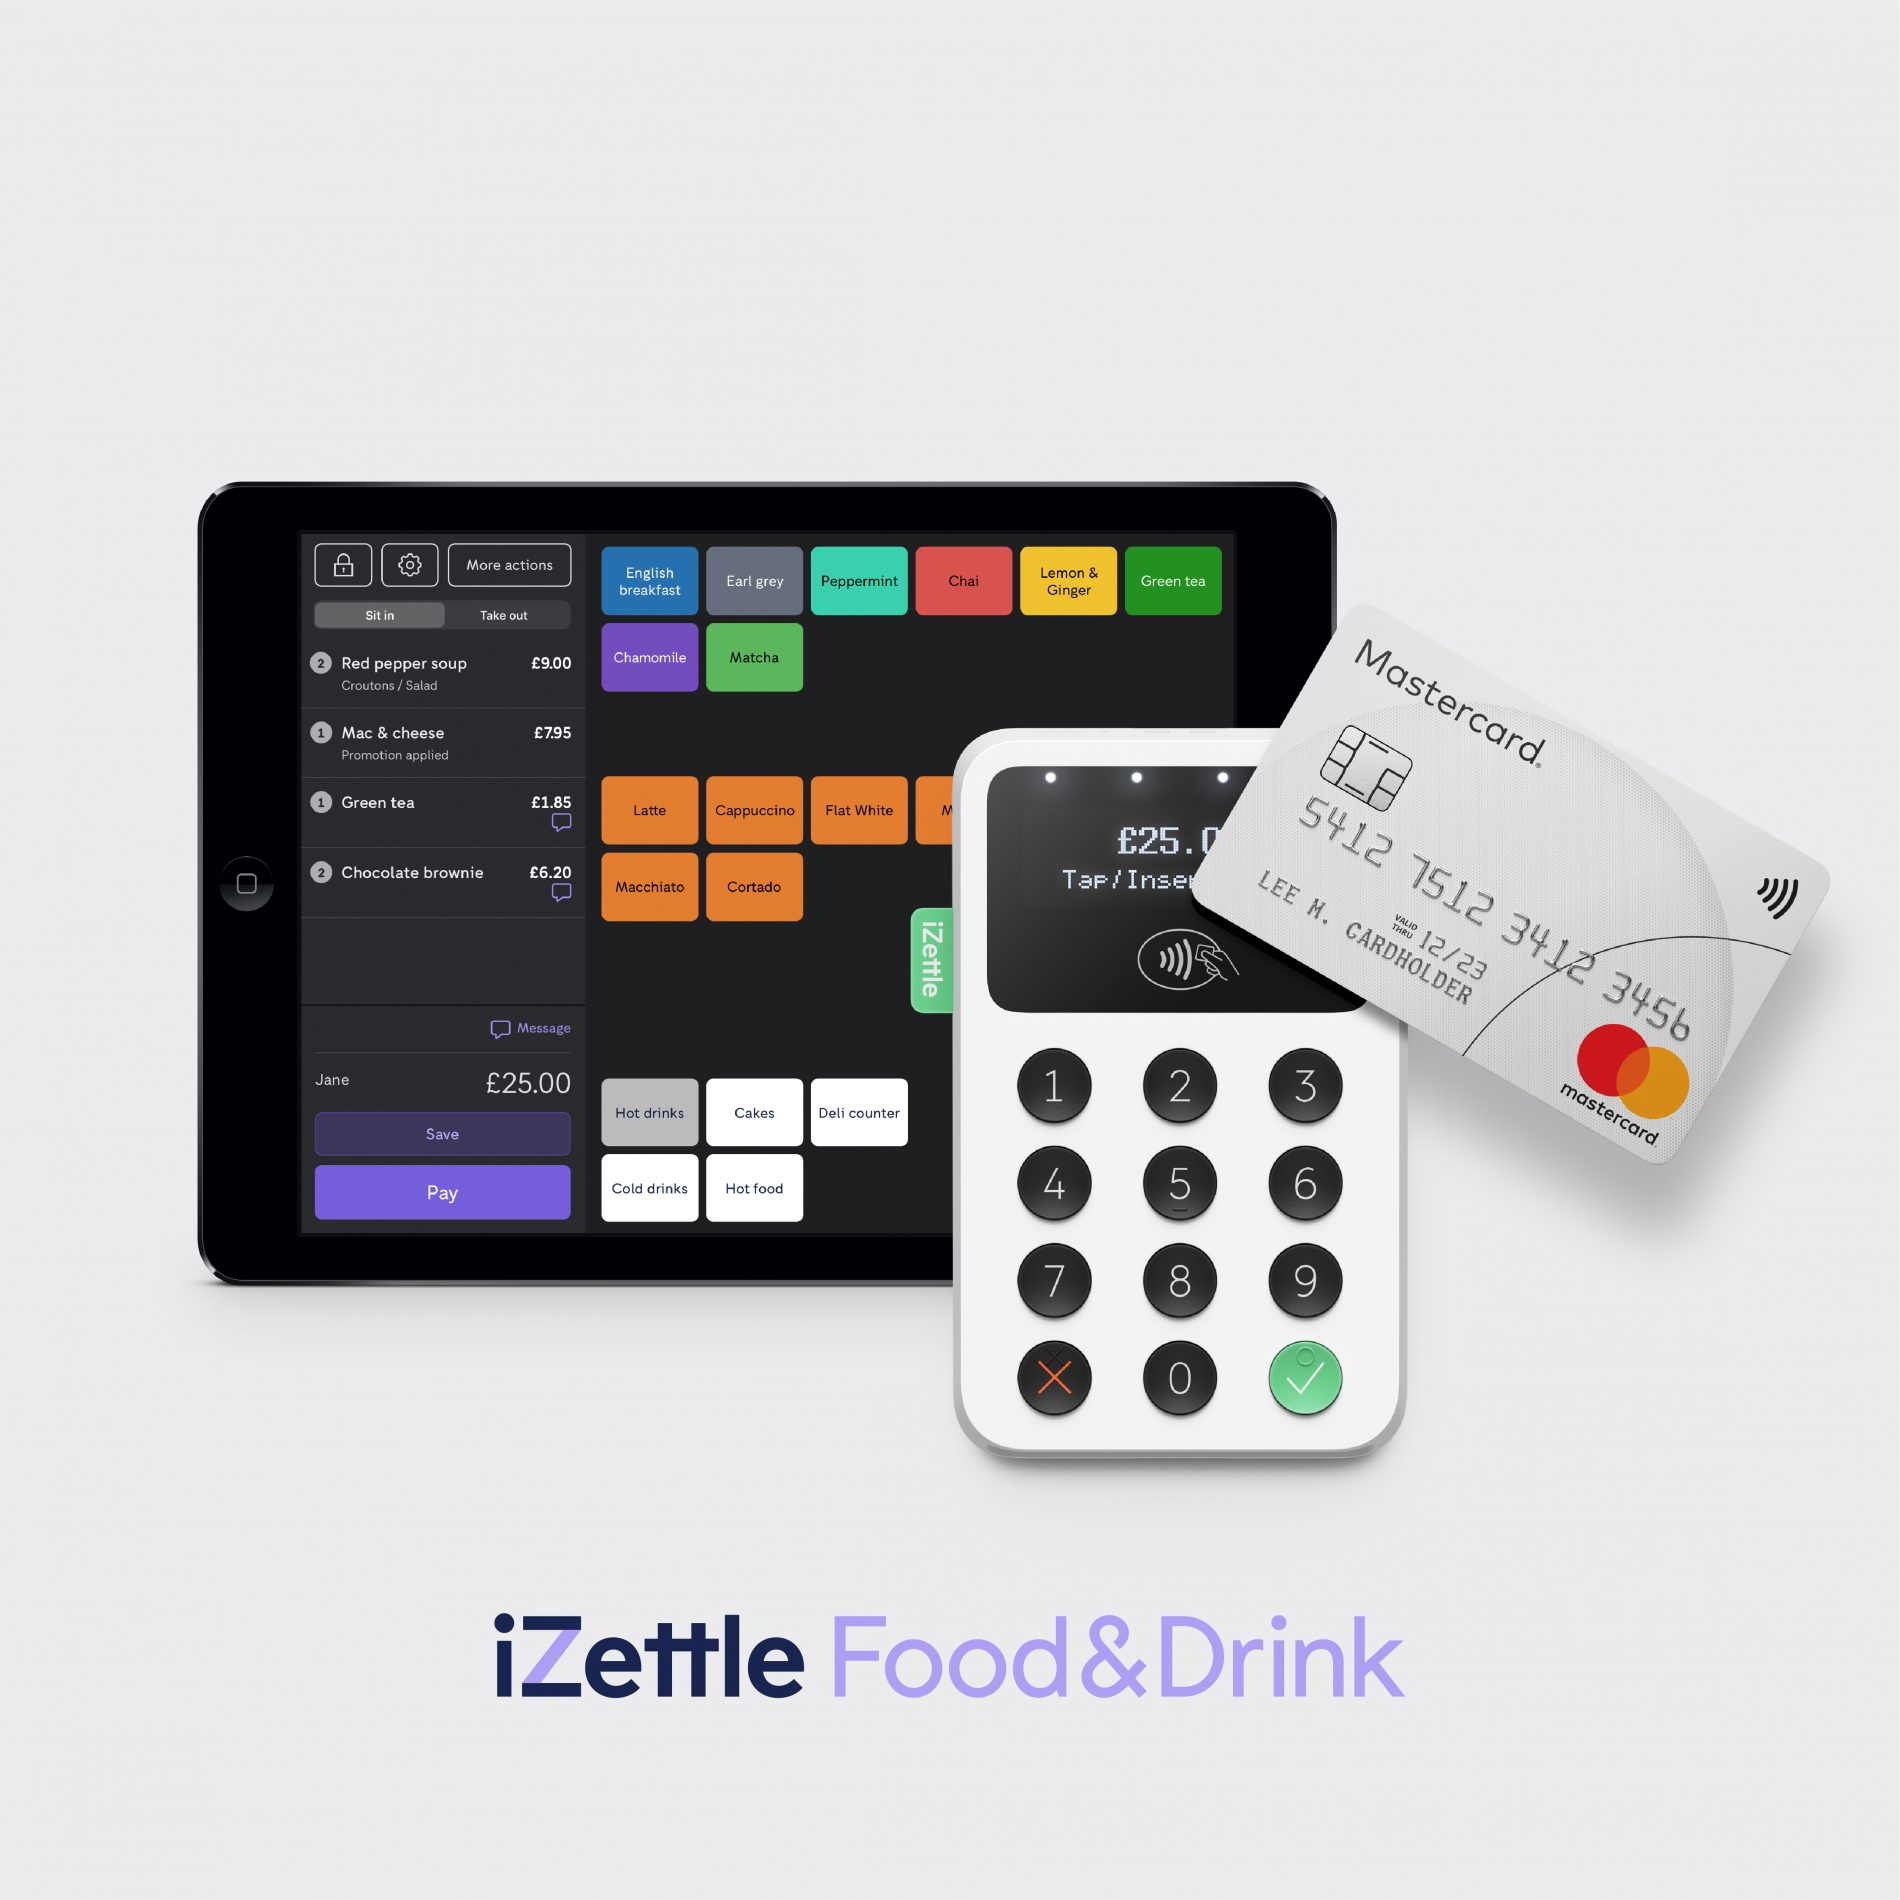 PayPal Launches iZettle Food & Drink